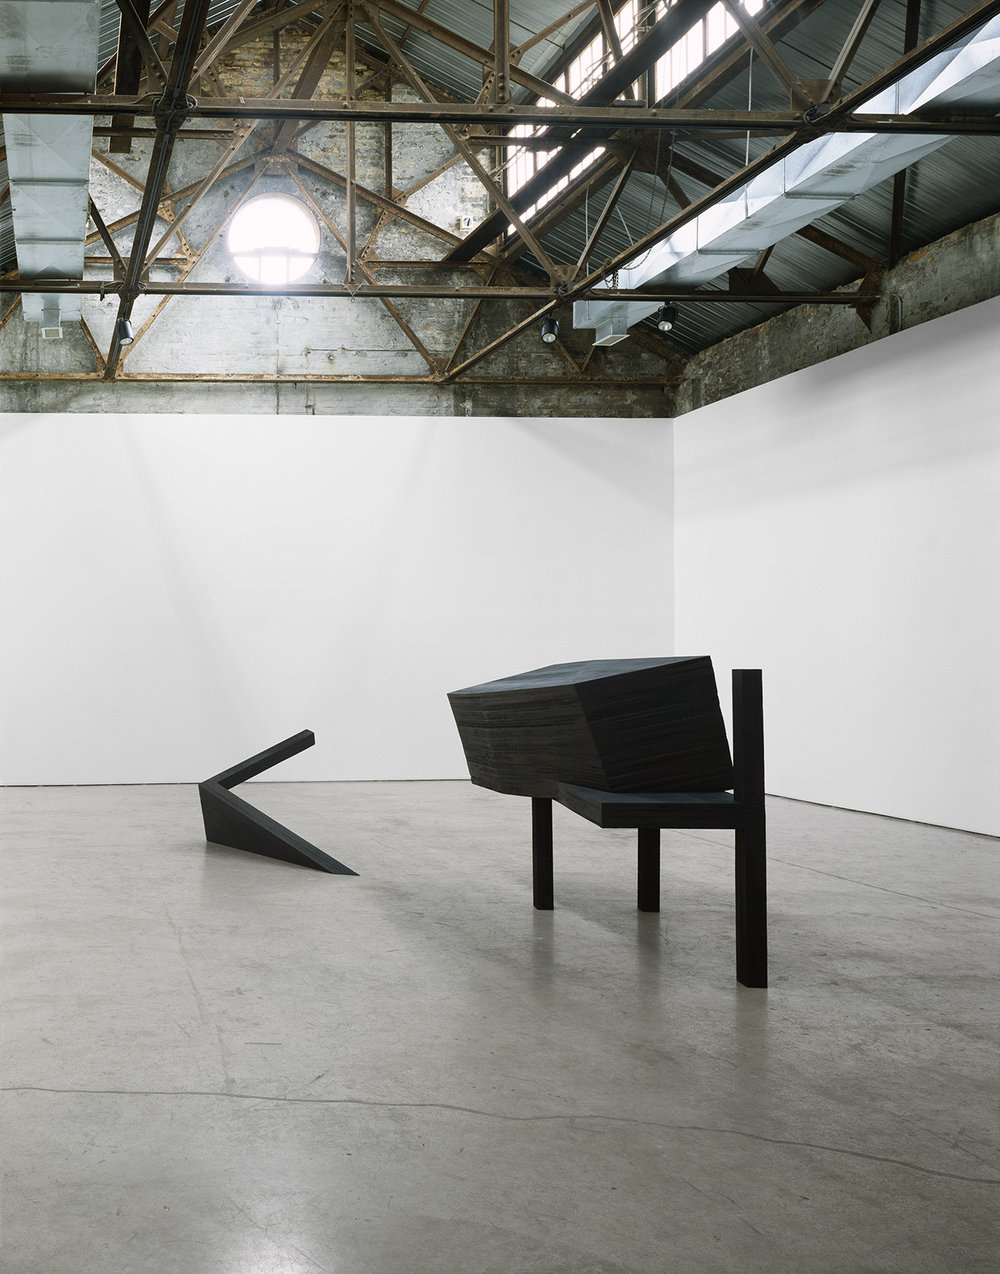 Déjà la nuit s'avance II  (1992)   Bois polychrome, 151 x 493 x 234 cm, collection du MOCCA. photo : J. Rodycz